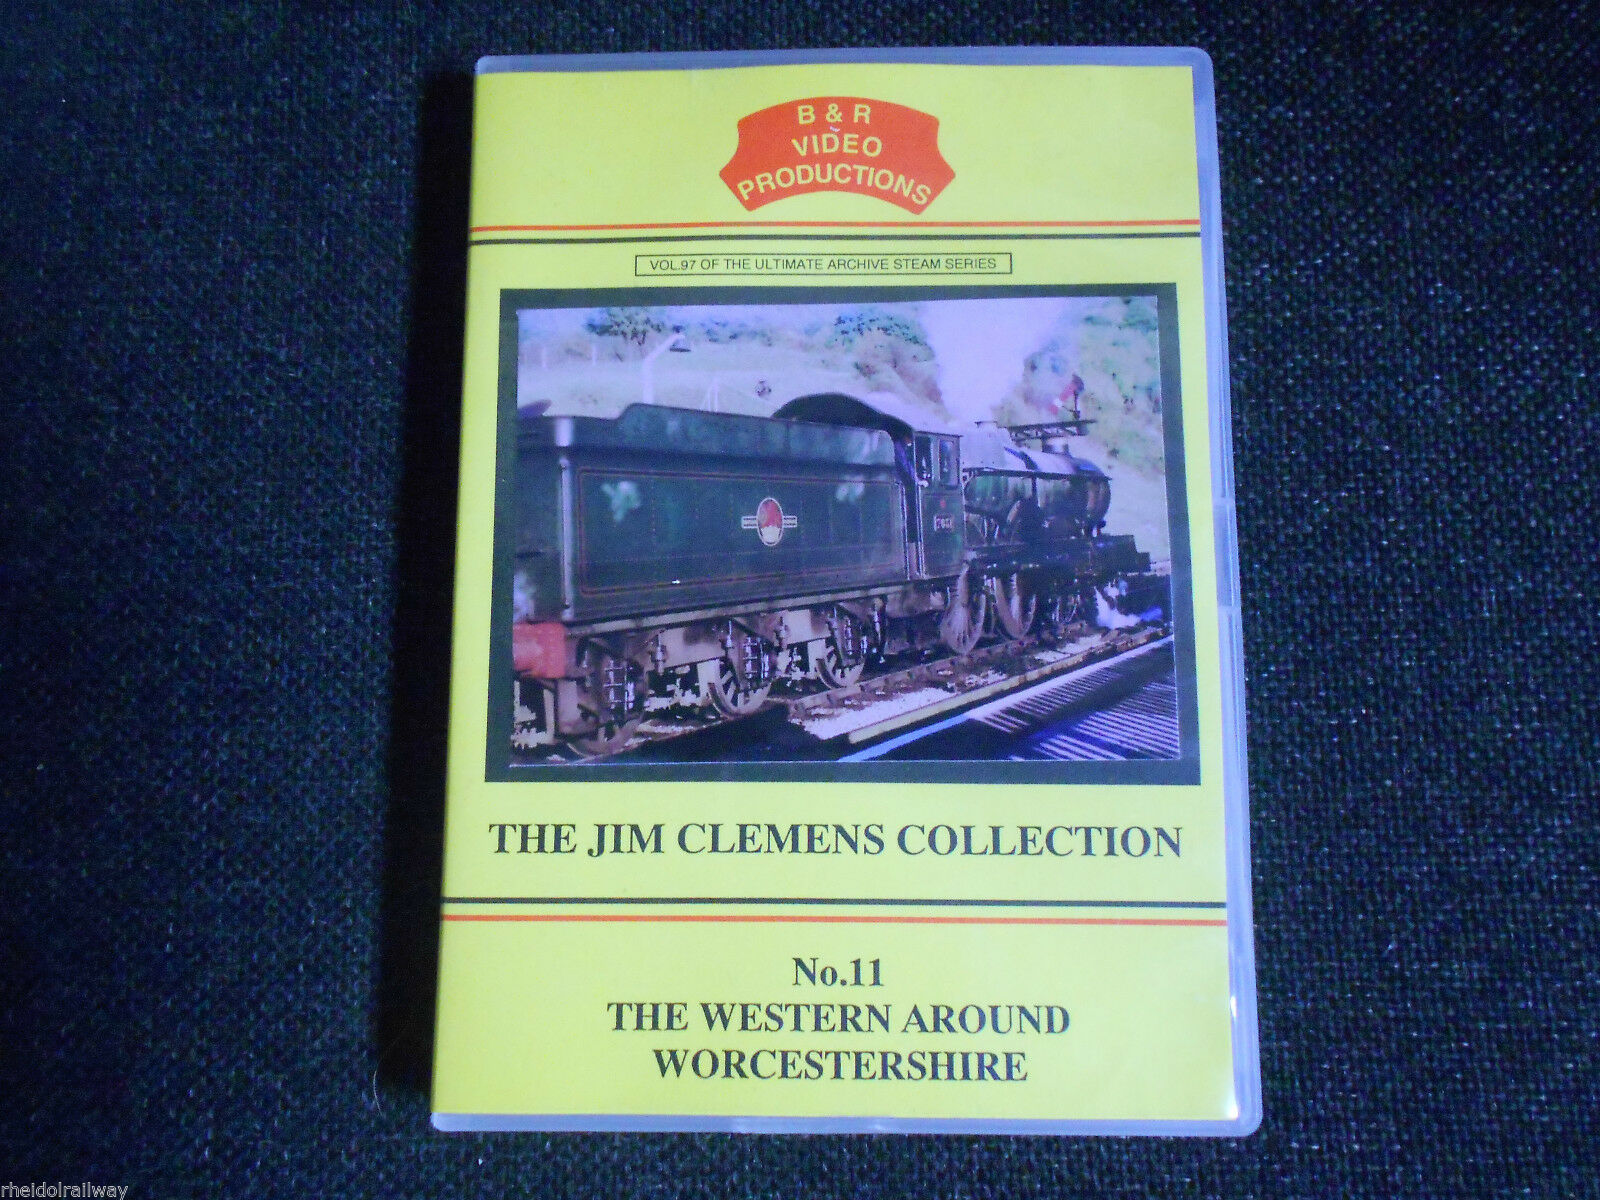 Hereford, Worcester, Campden, The Western around Worcestershire, B&R Vol 97 DVD